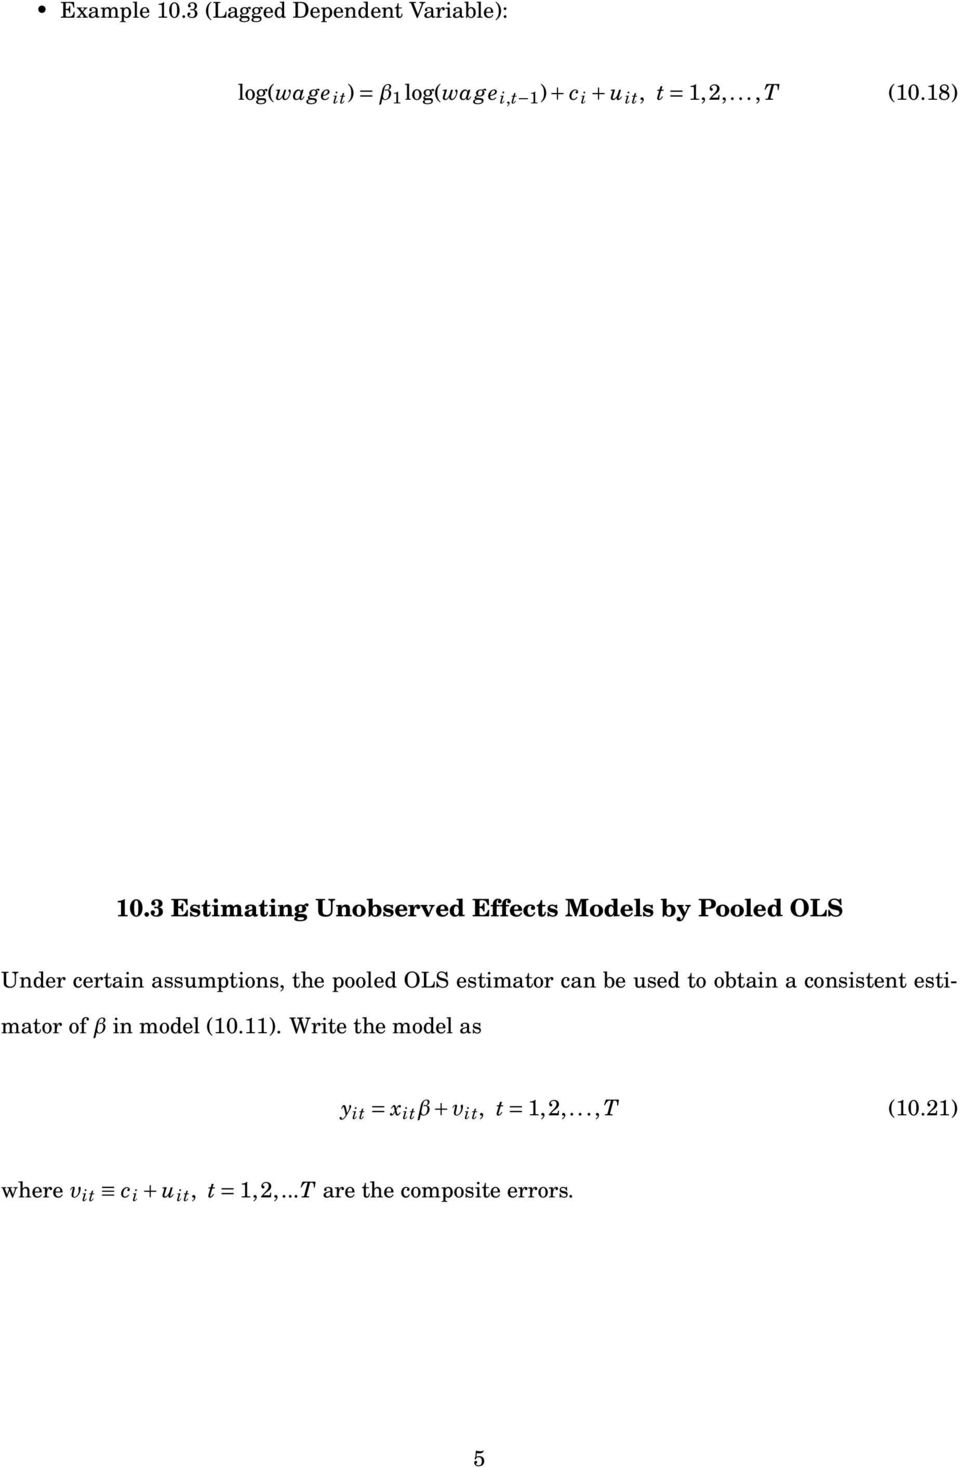 3 Estimating Unobserved Effects Models by Pooled OLS Under certain assumptions, the pooled OLS estimator